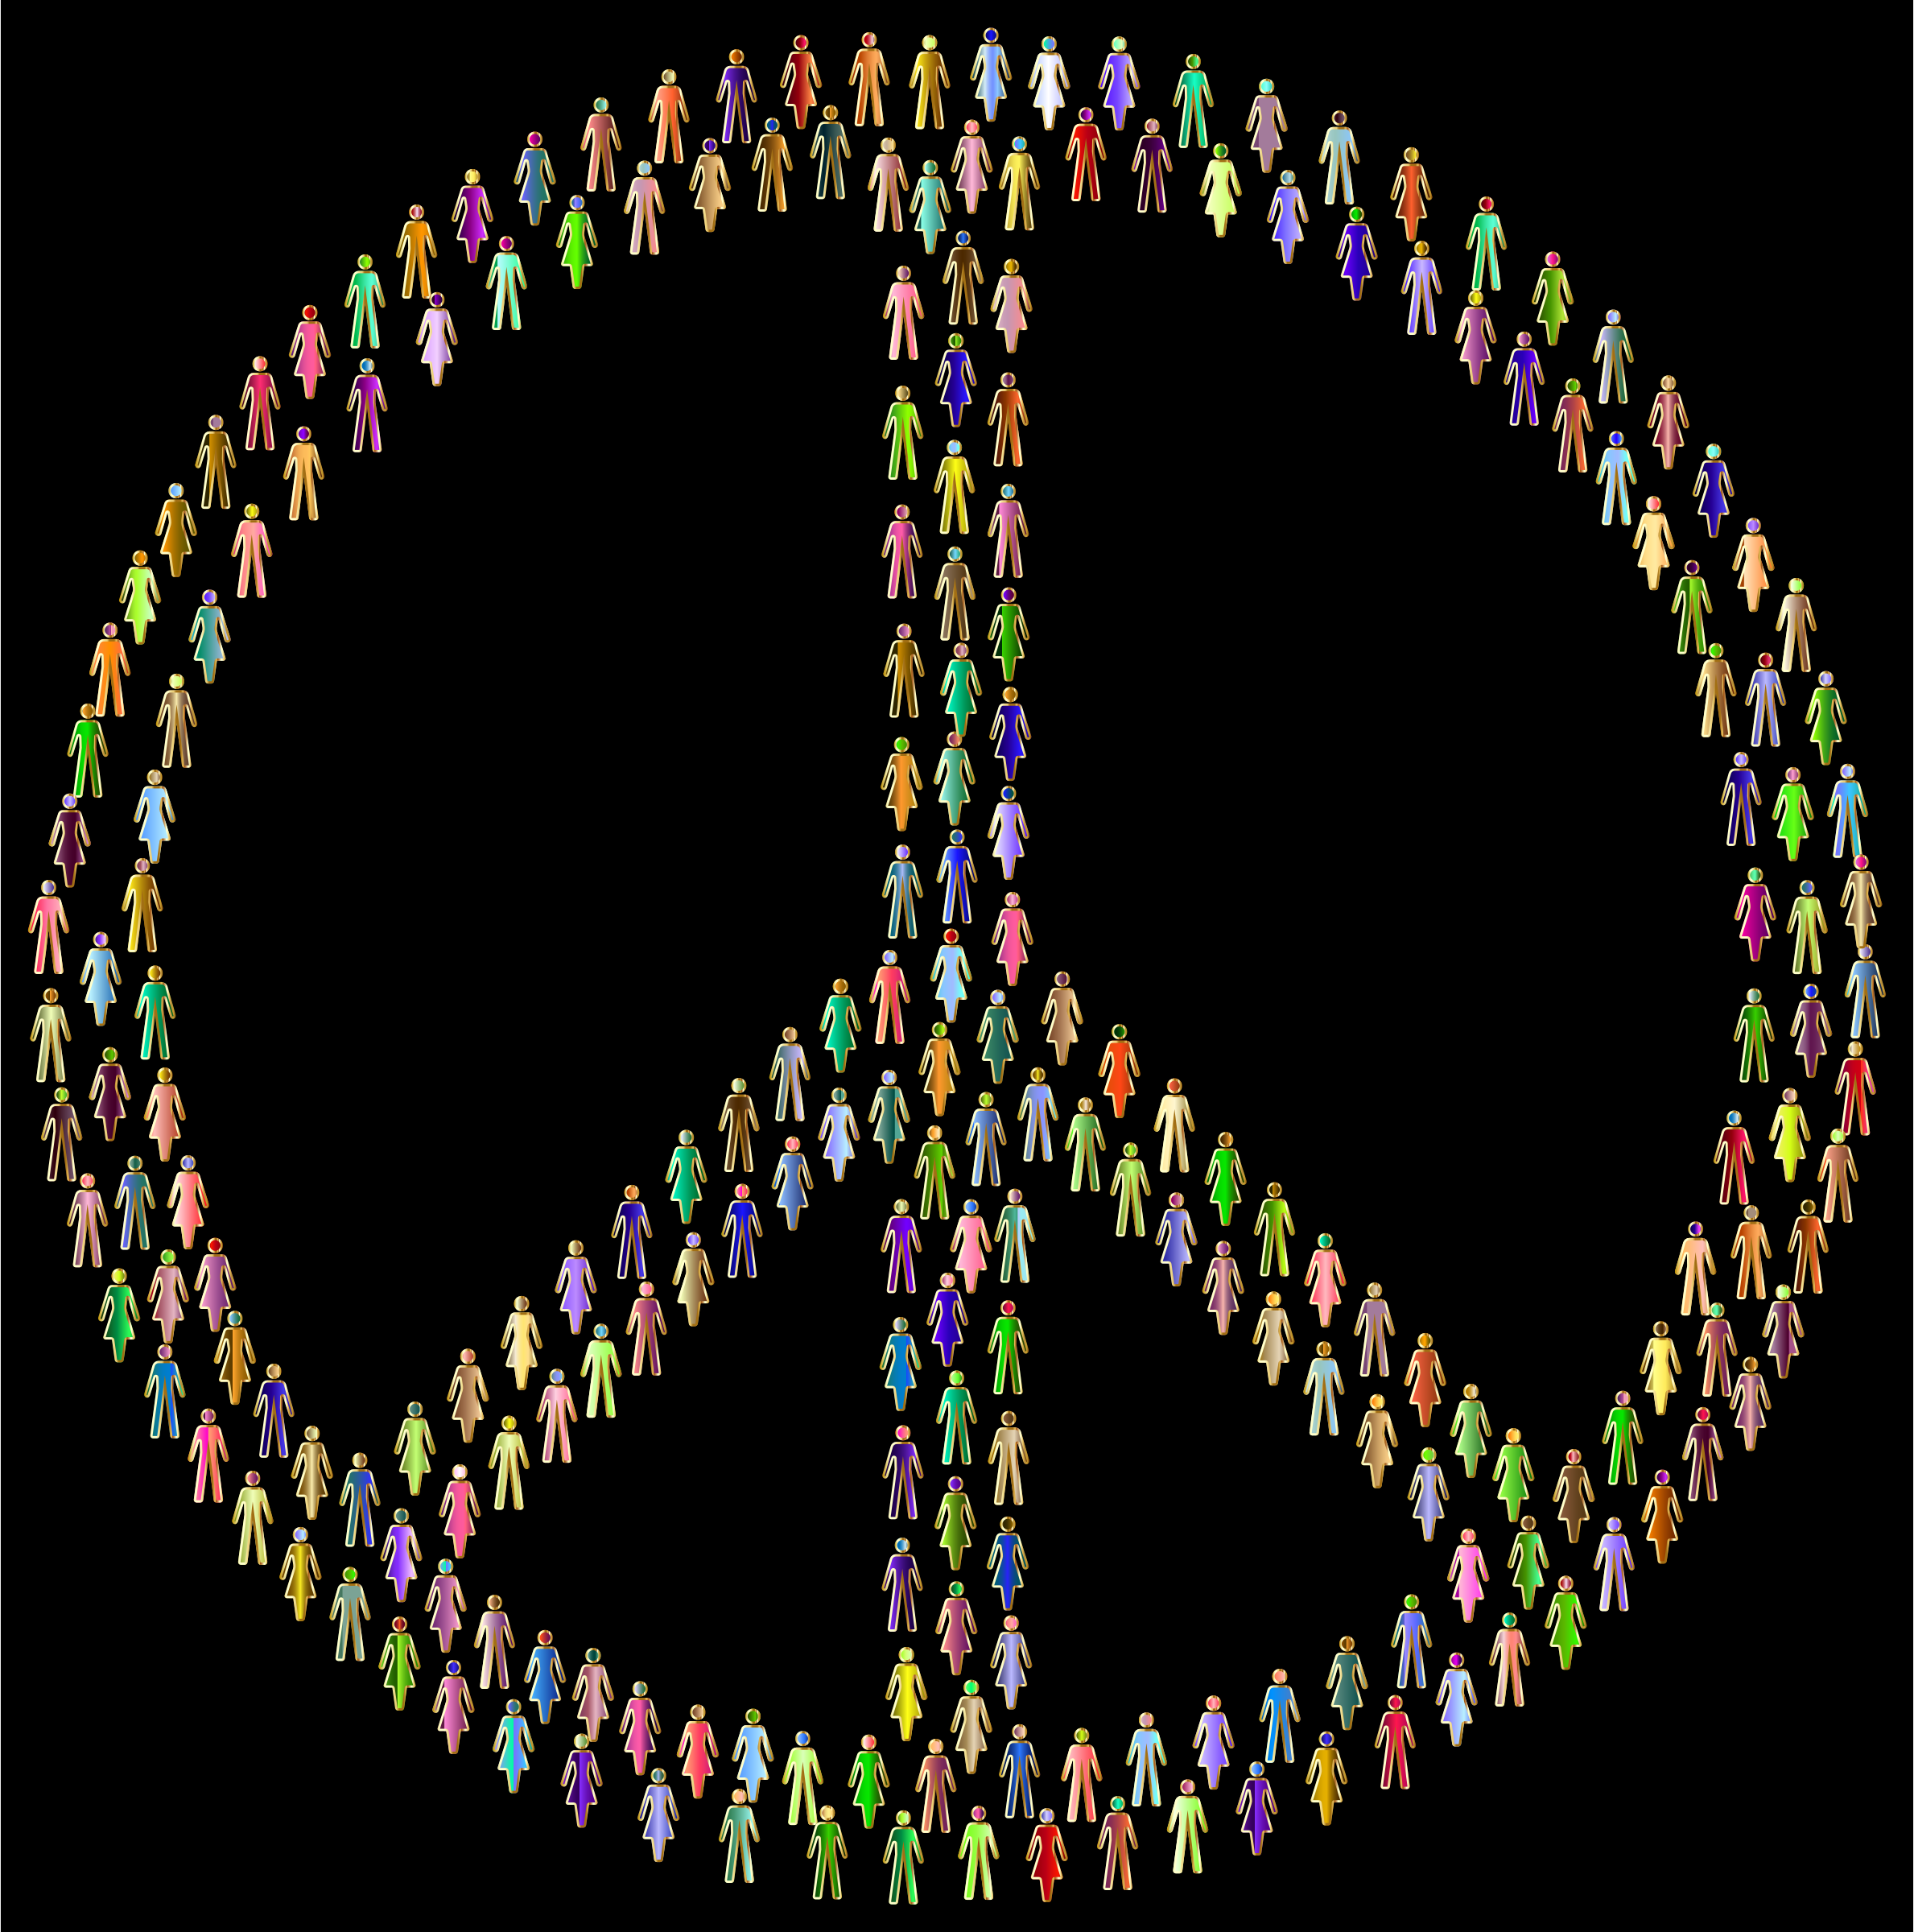 Prismatic People For Peace Mark II 6 by GDJ